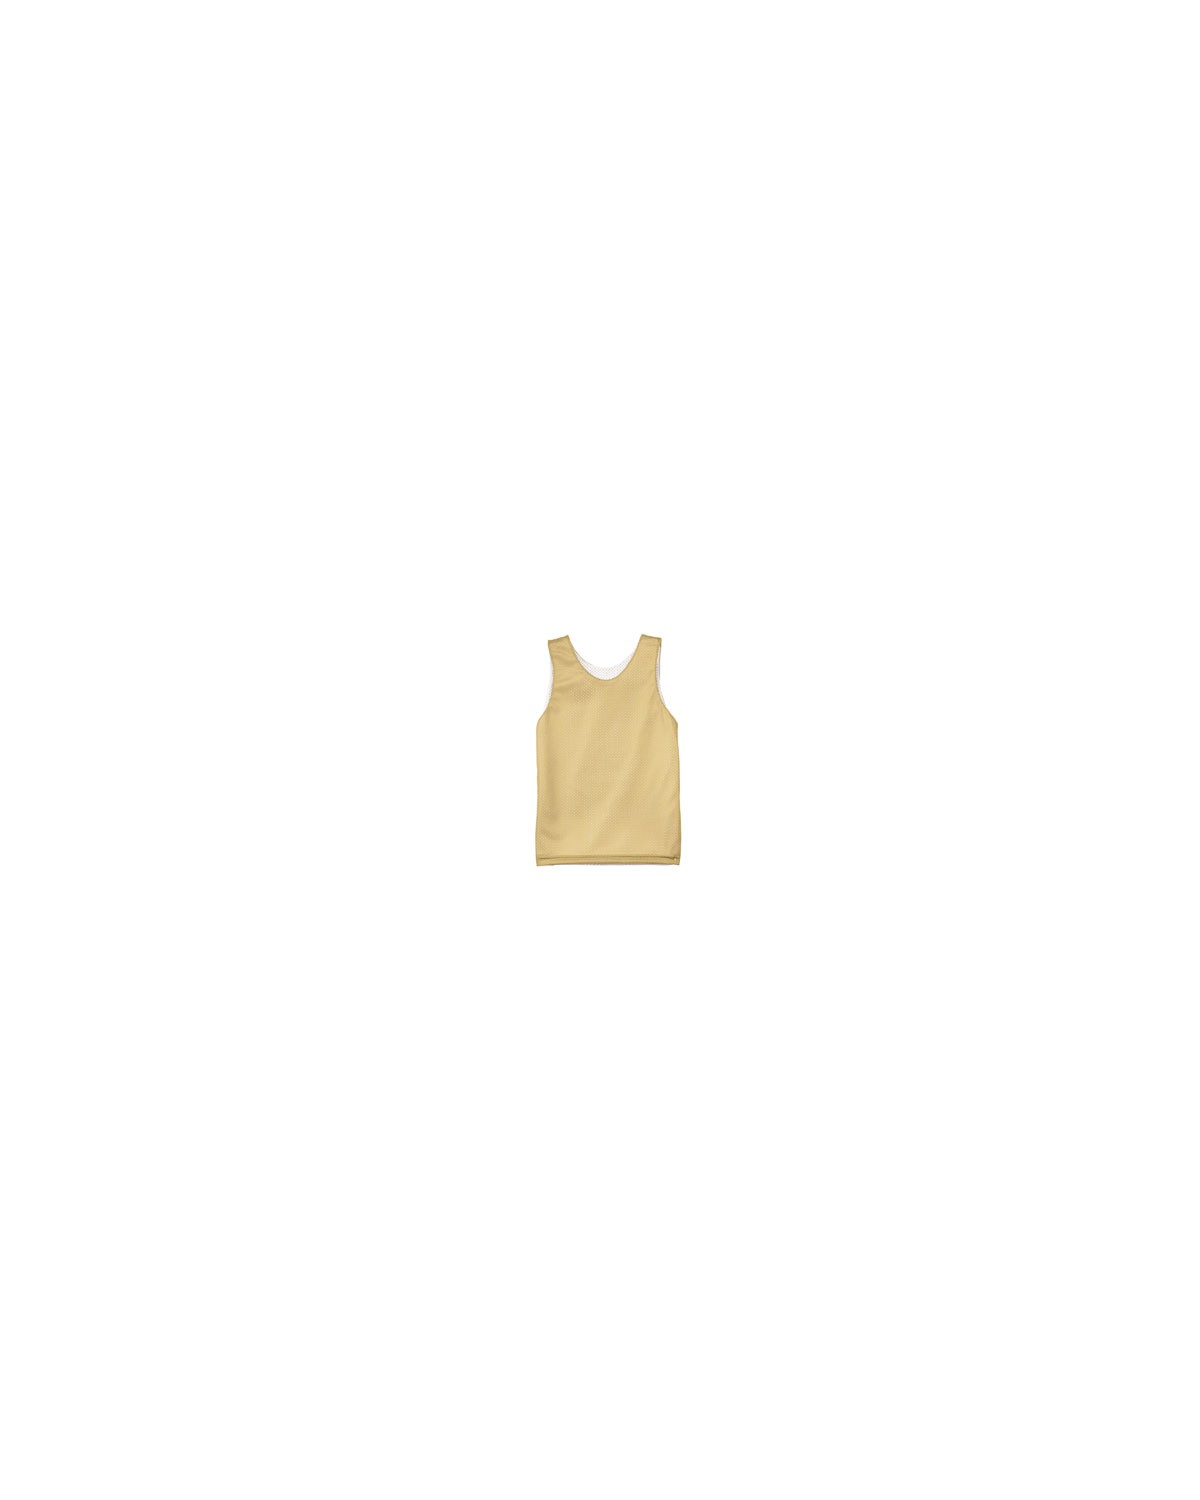 N2206 A4 Apparel VEGAS GOLD/WHT